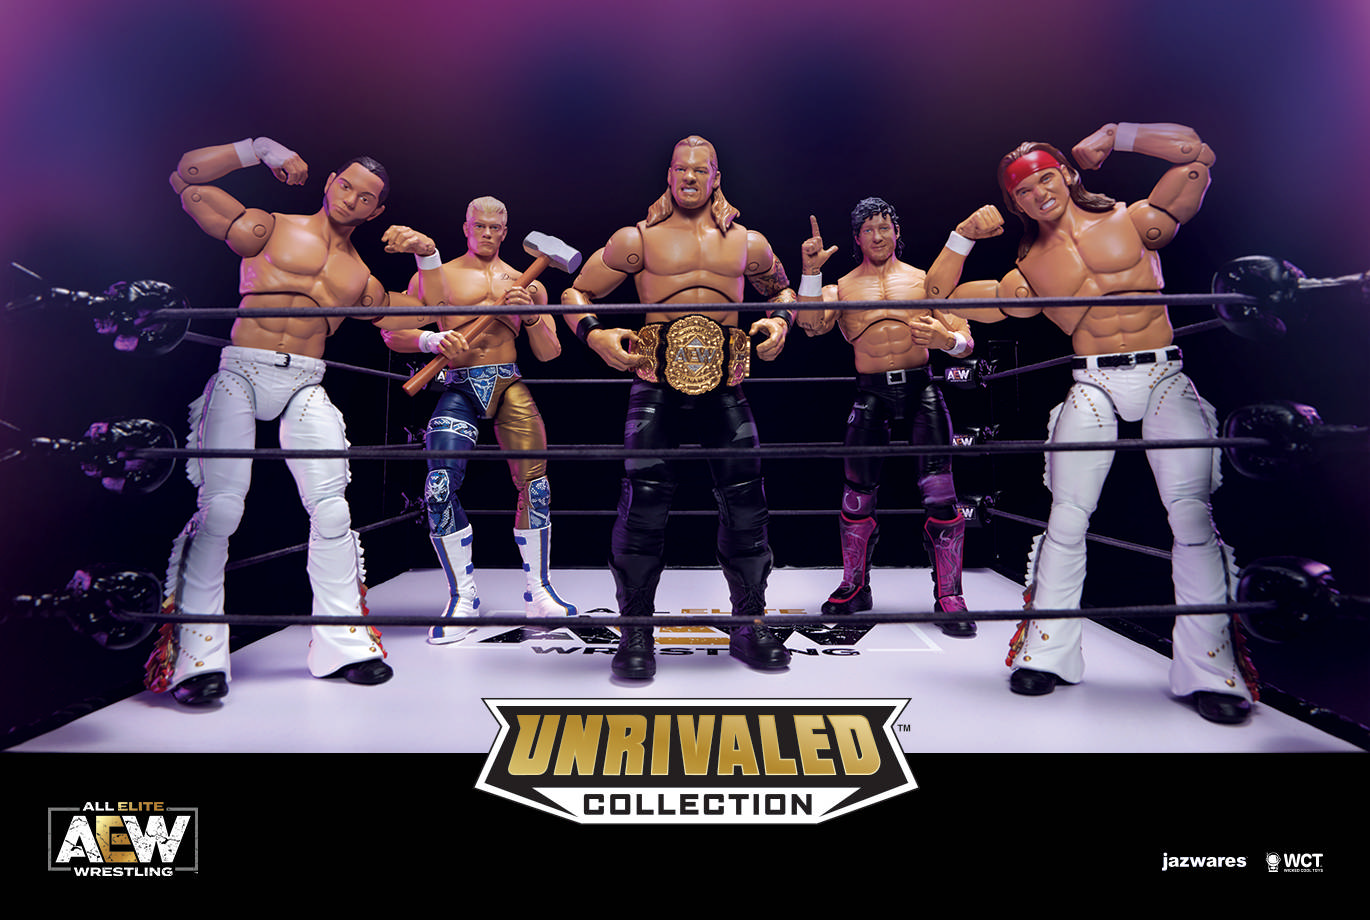 Aew Wrestling Action Figures Cheaper Than Retail Price Buy Clothing Accessories And Lifestyle Products For Women Men